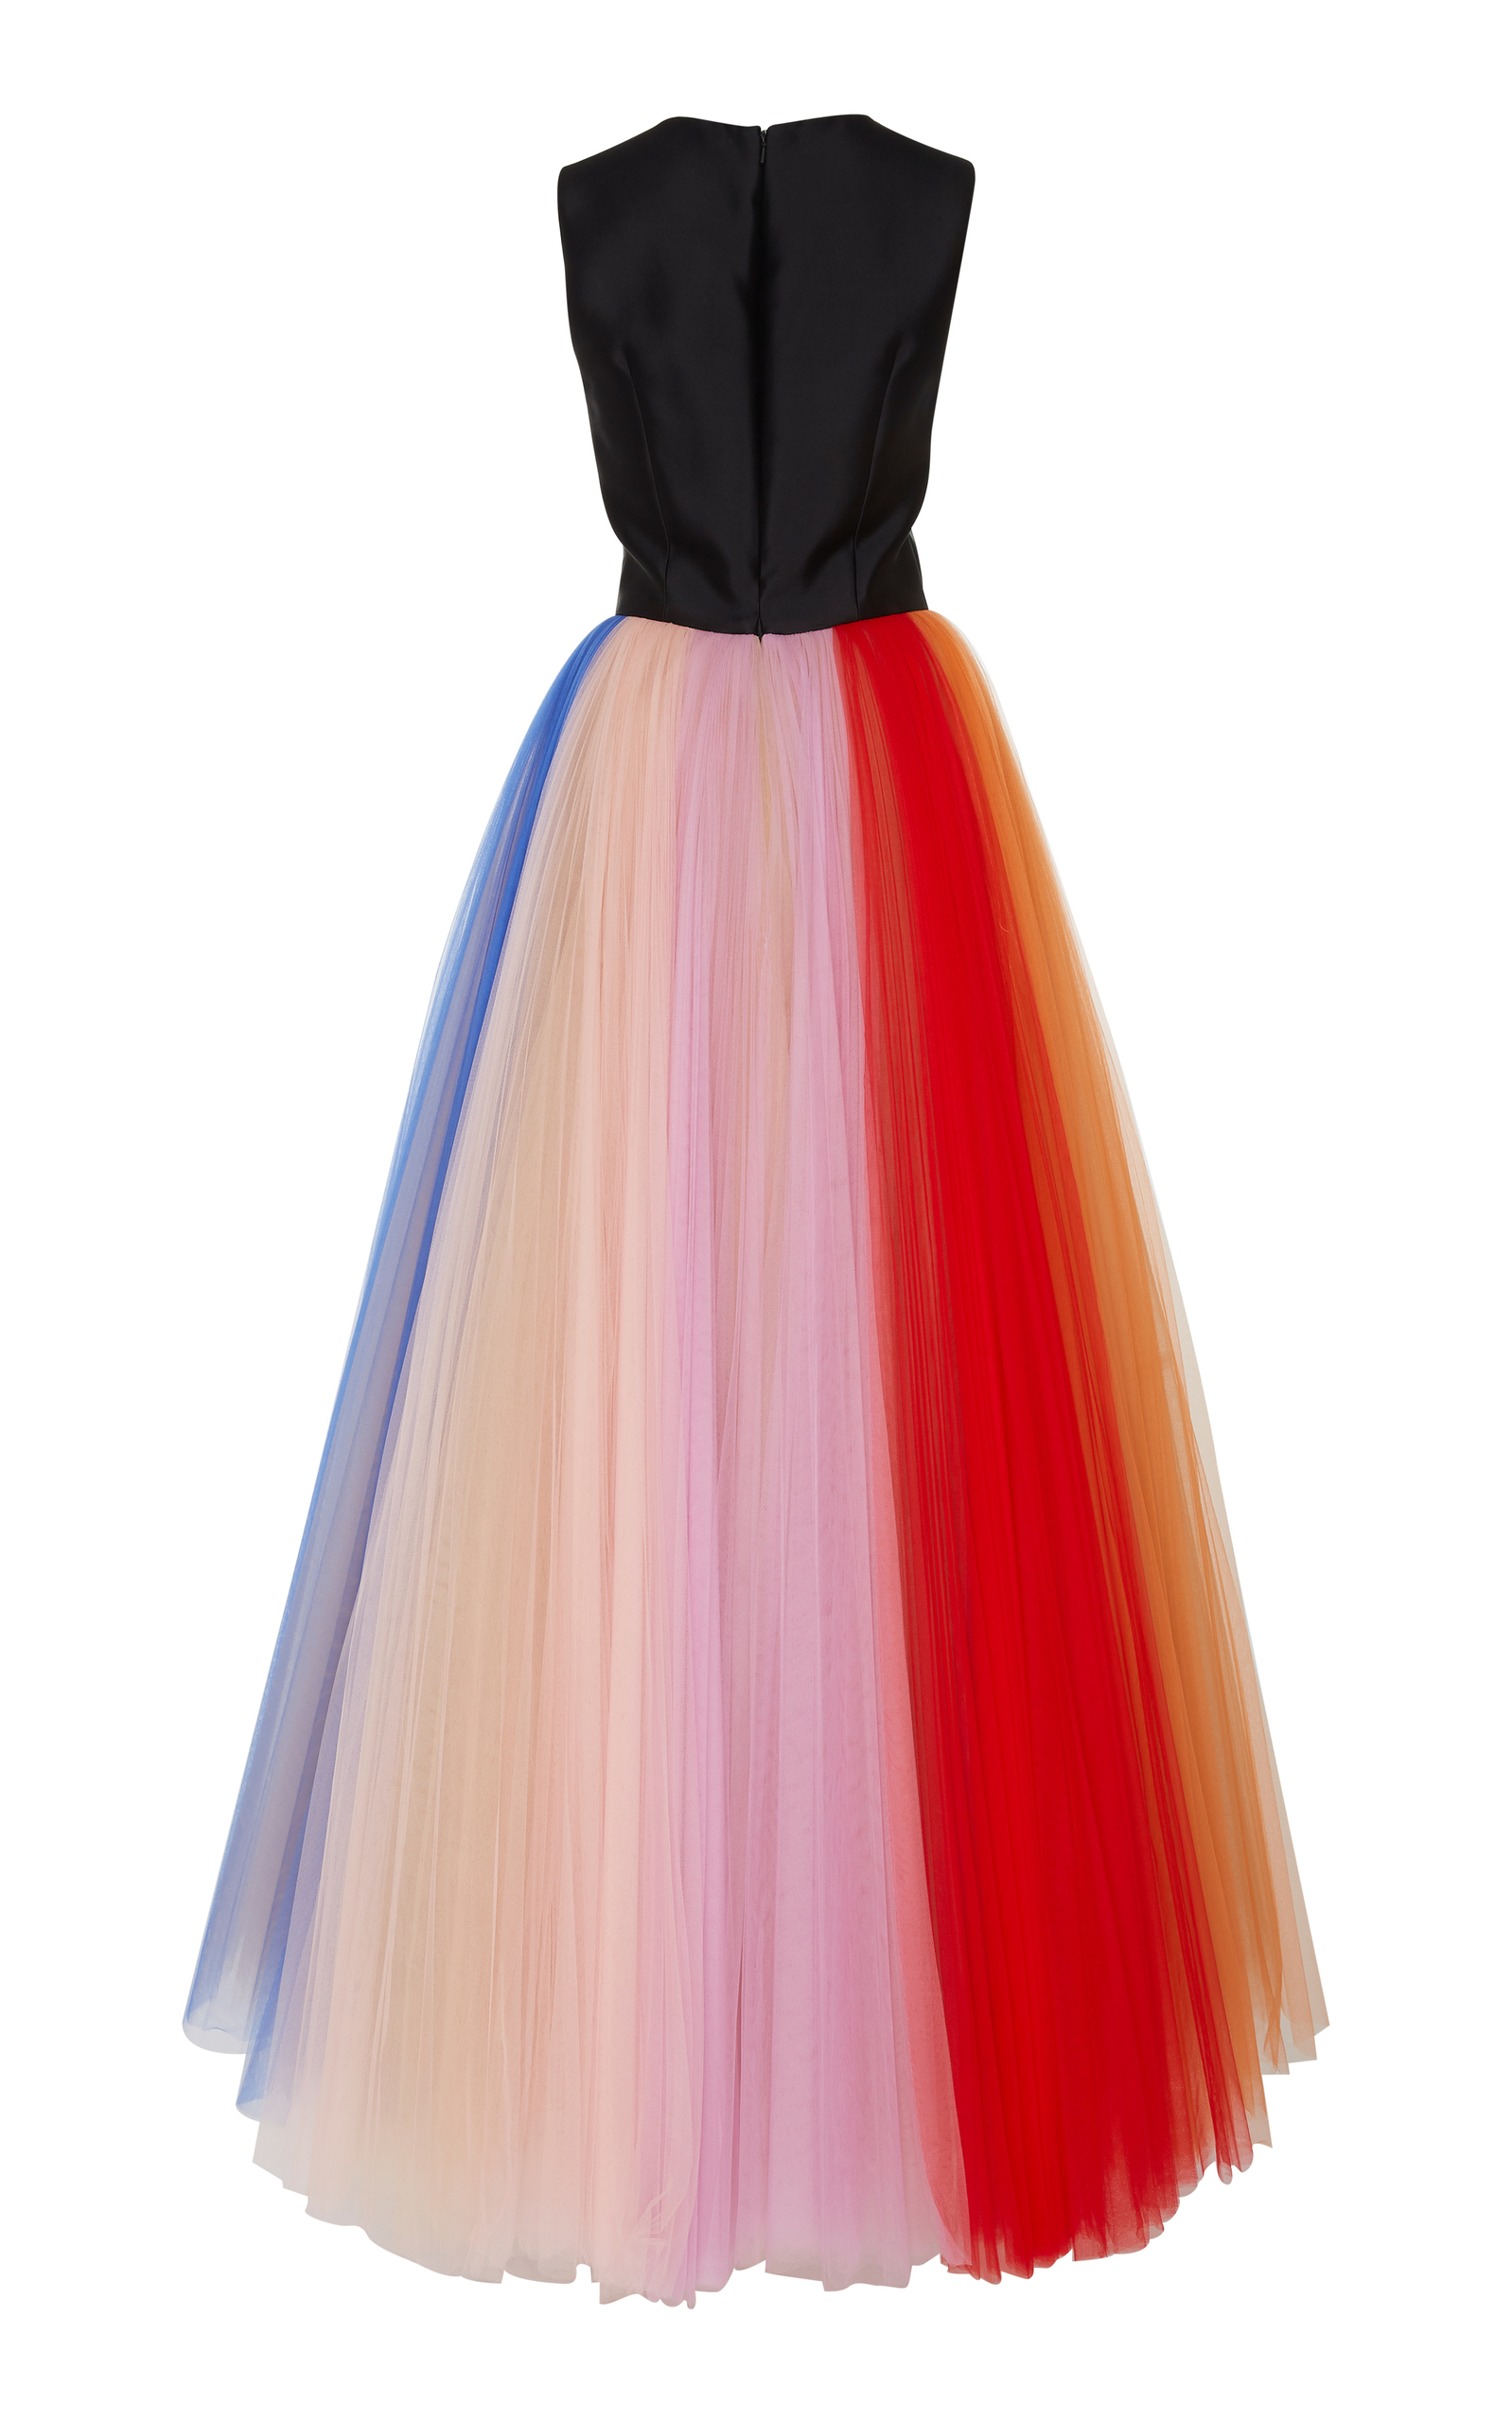 b2f375d0ab8 Carolina HerreraSleeveless Gown With Pleated Tulle Skirt. CLOSE. Loading.  Loading